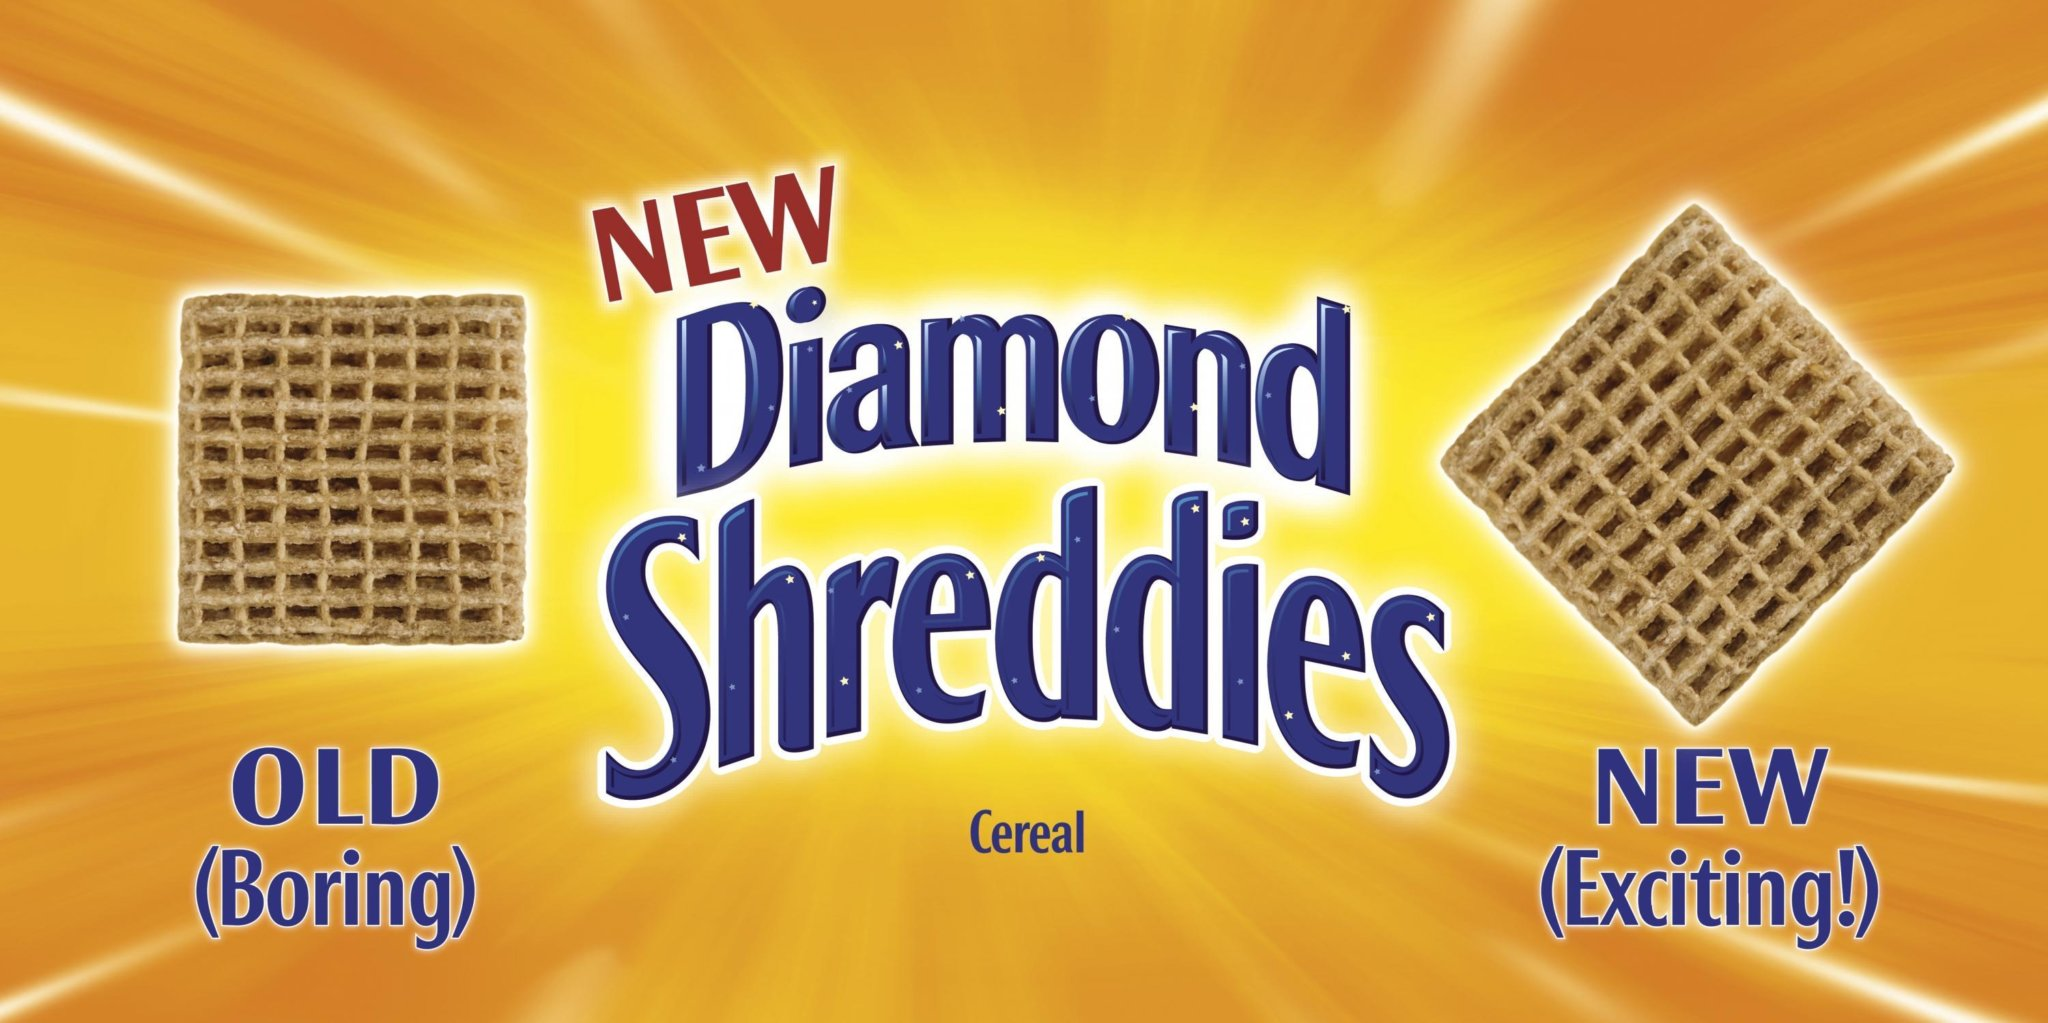 Kraft Foods Canada - Diamond Shreddies Old (Boring) and New (Exciting), 45 Degree Flip